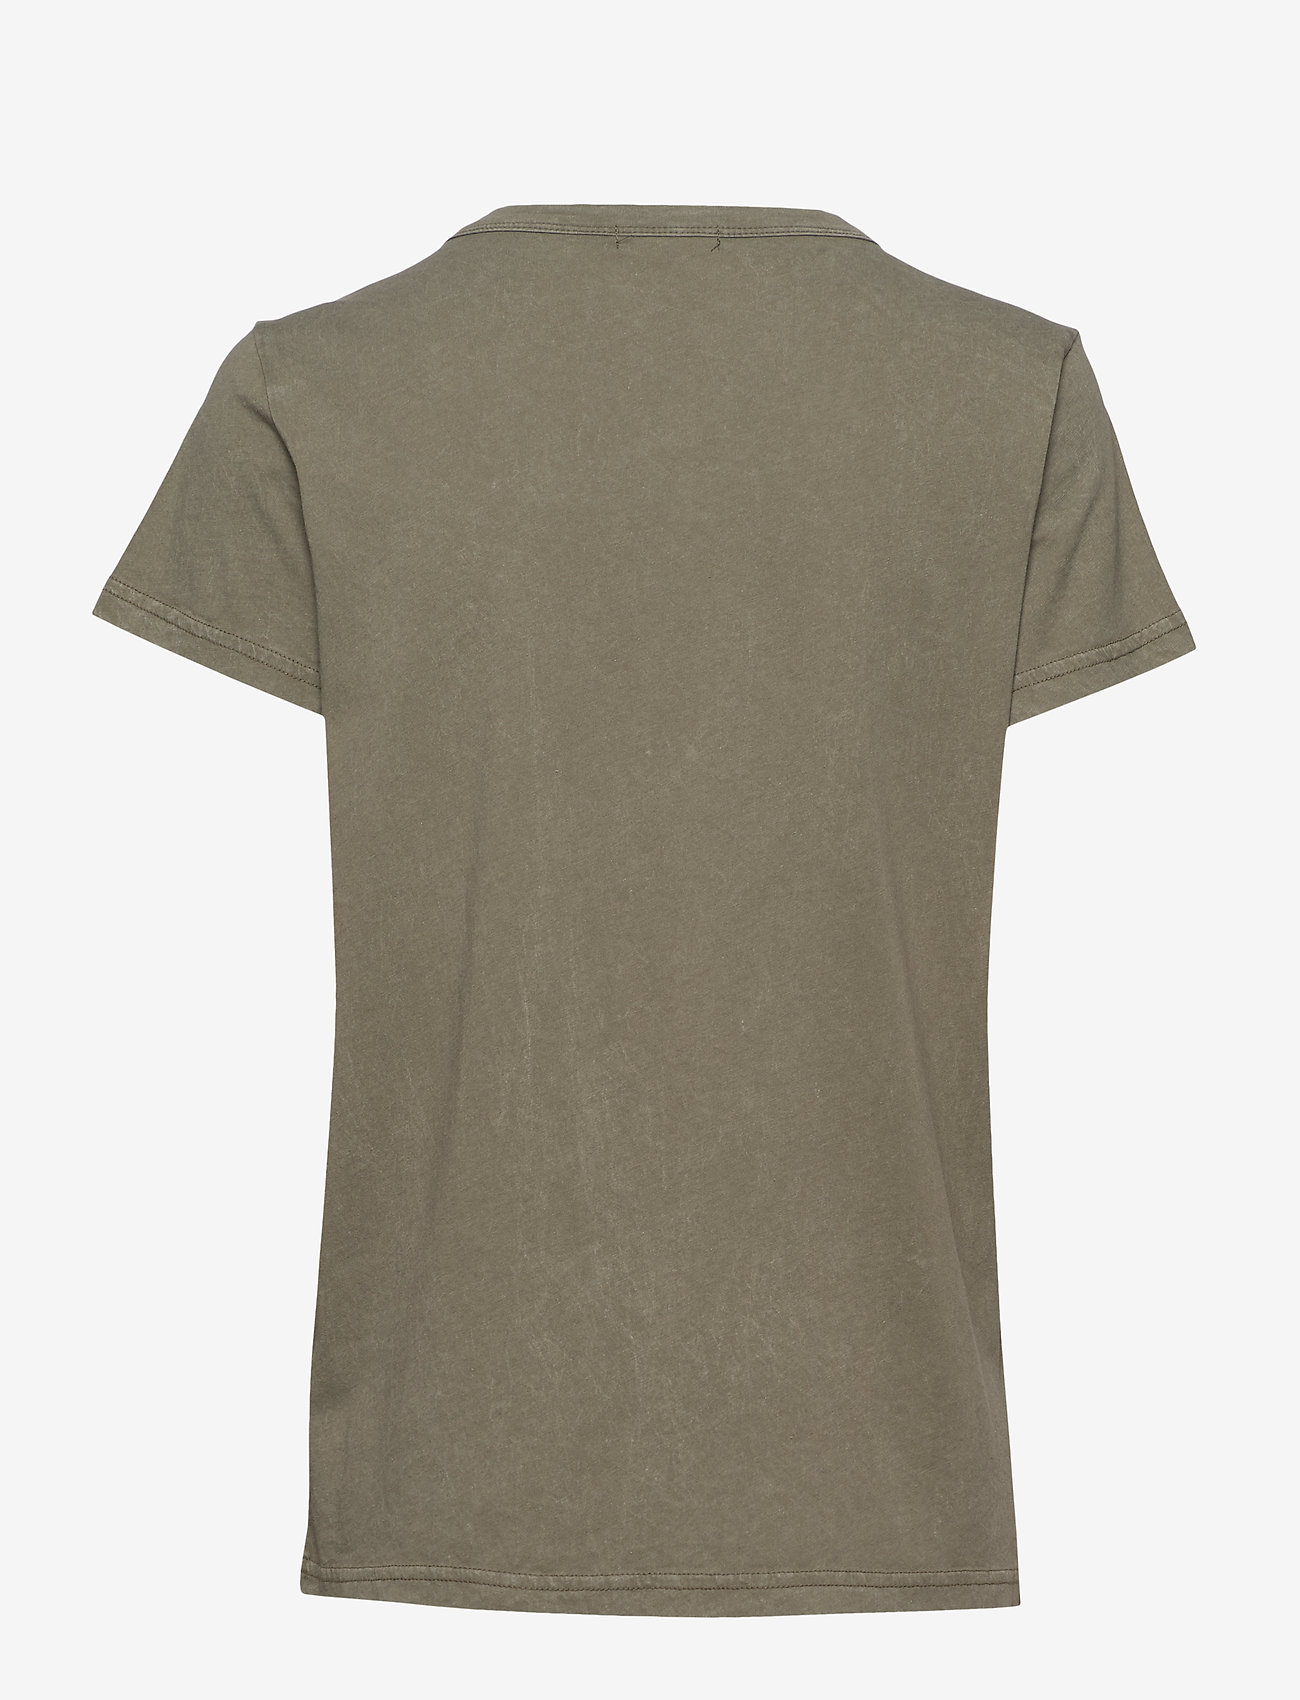 Levete Room LR-CAMRY - T-shirts & Tops L704 - DUSTY OLIVE